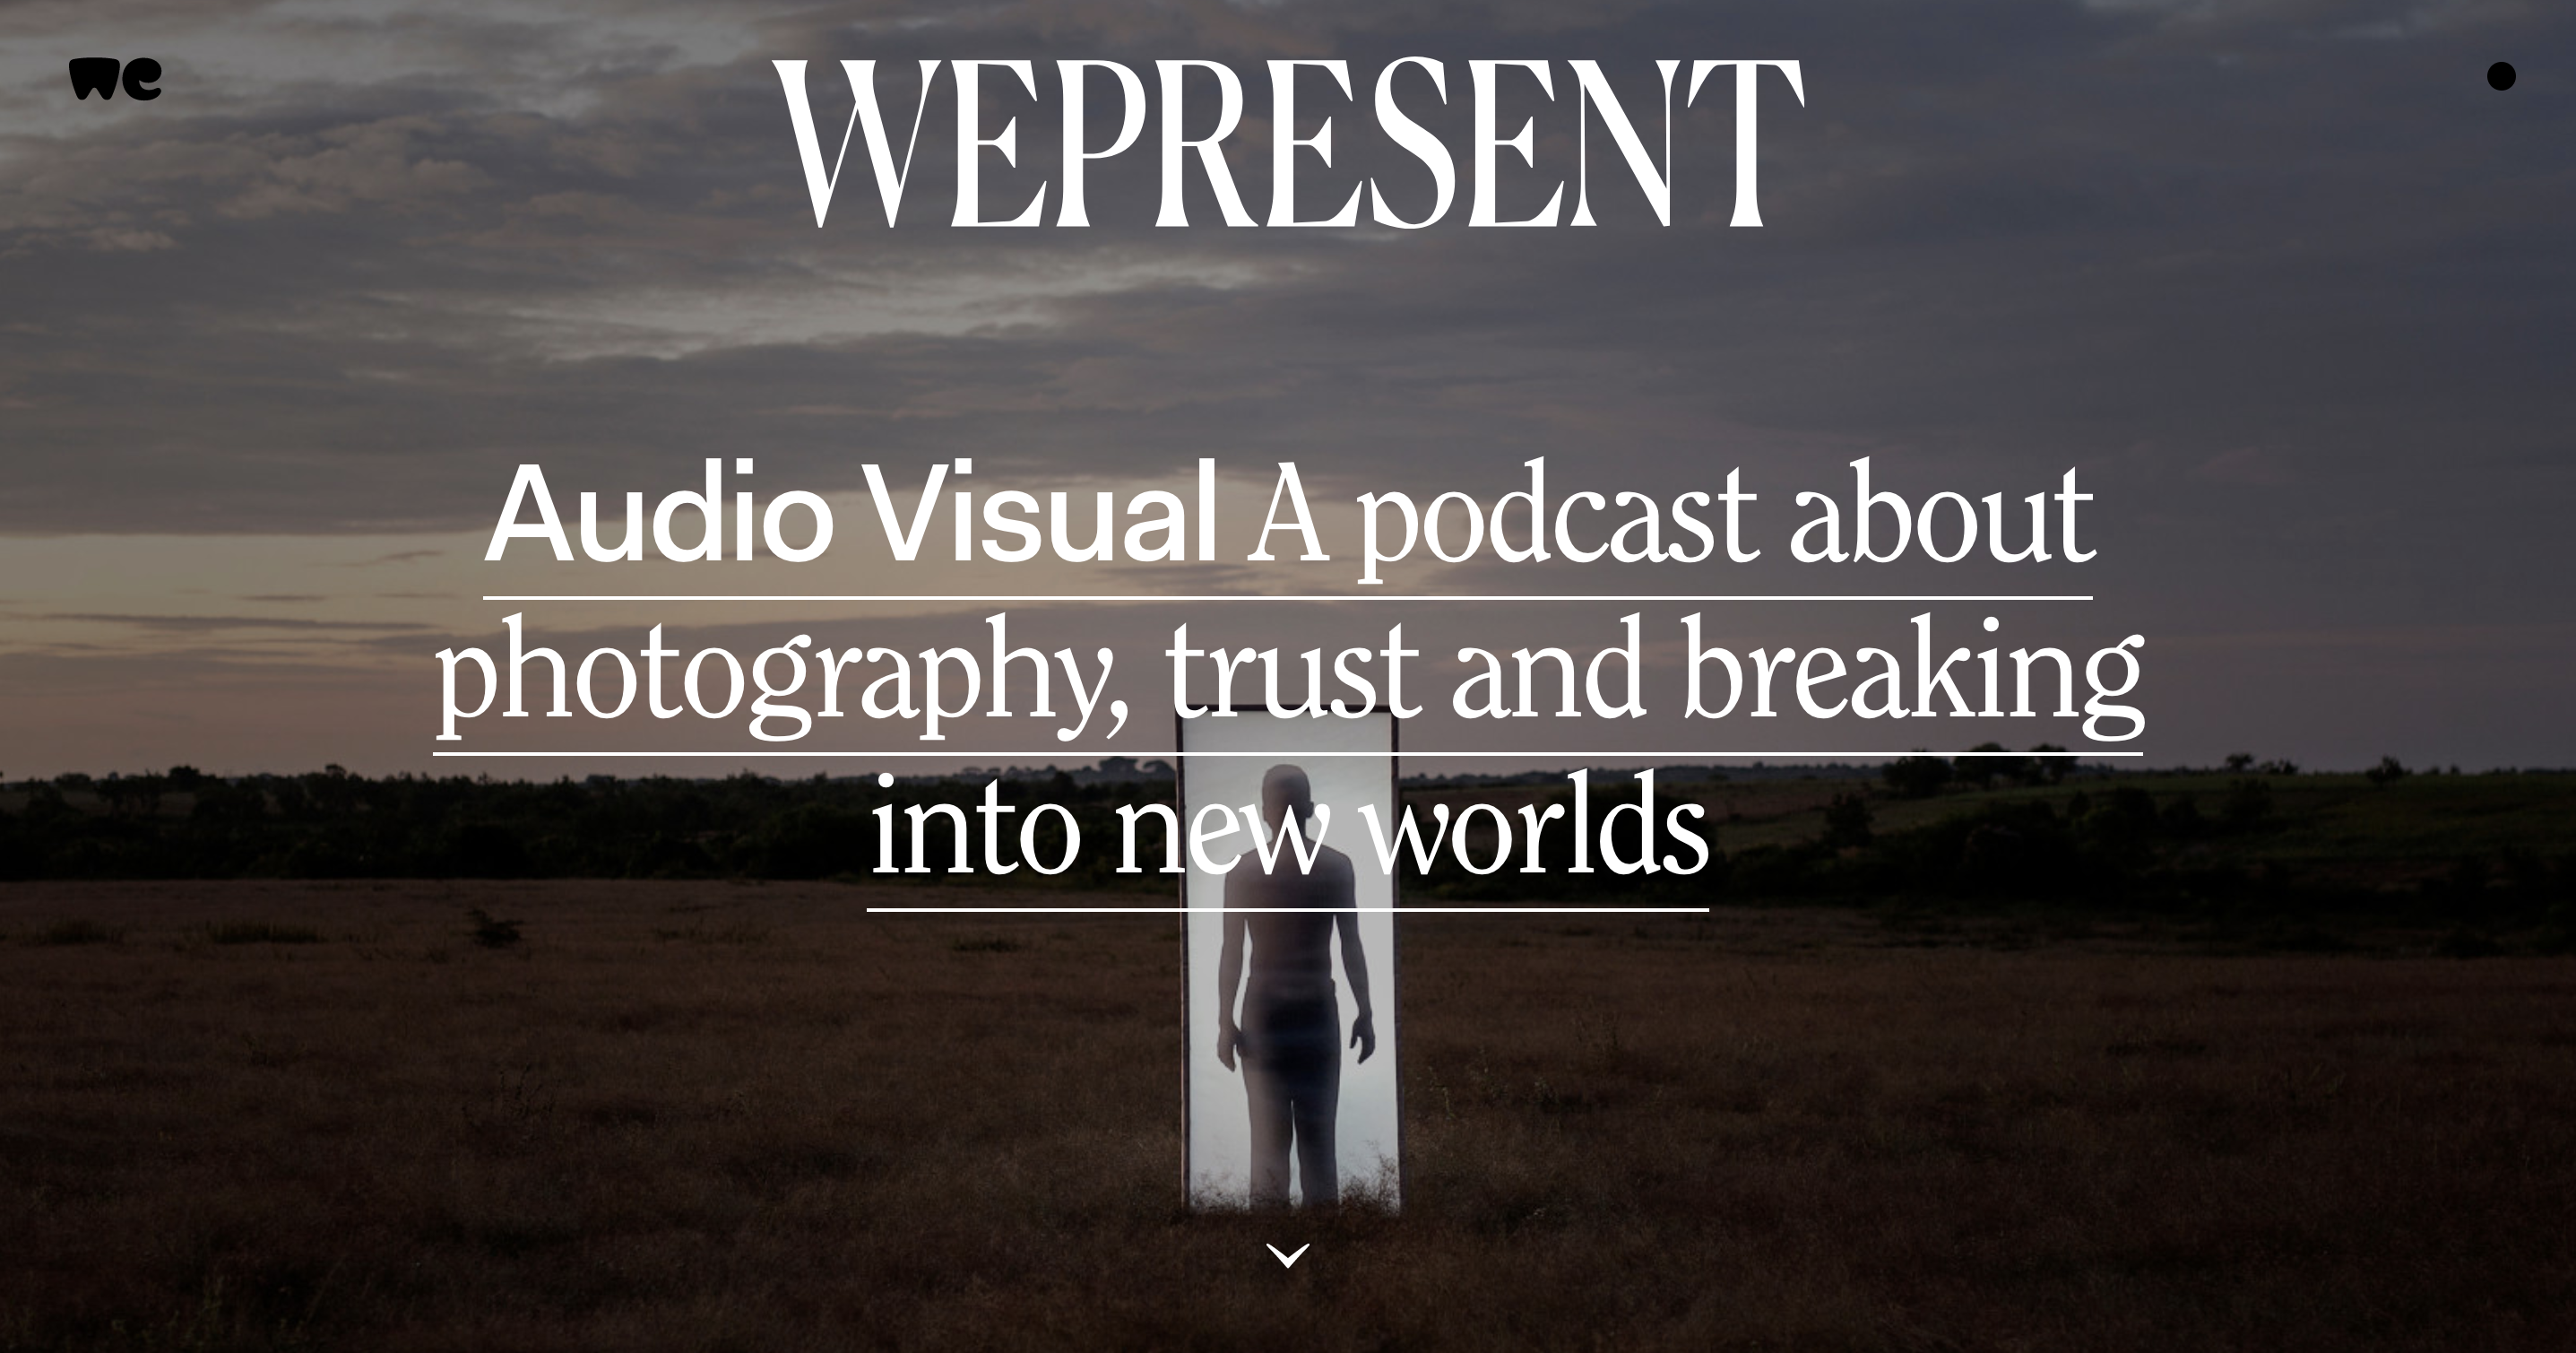 Homepage of WePresent, featuring a new podcast series created by WeTransfer and ICP.